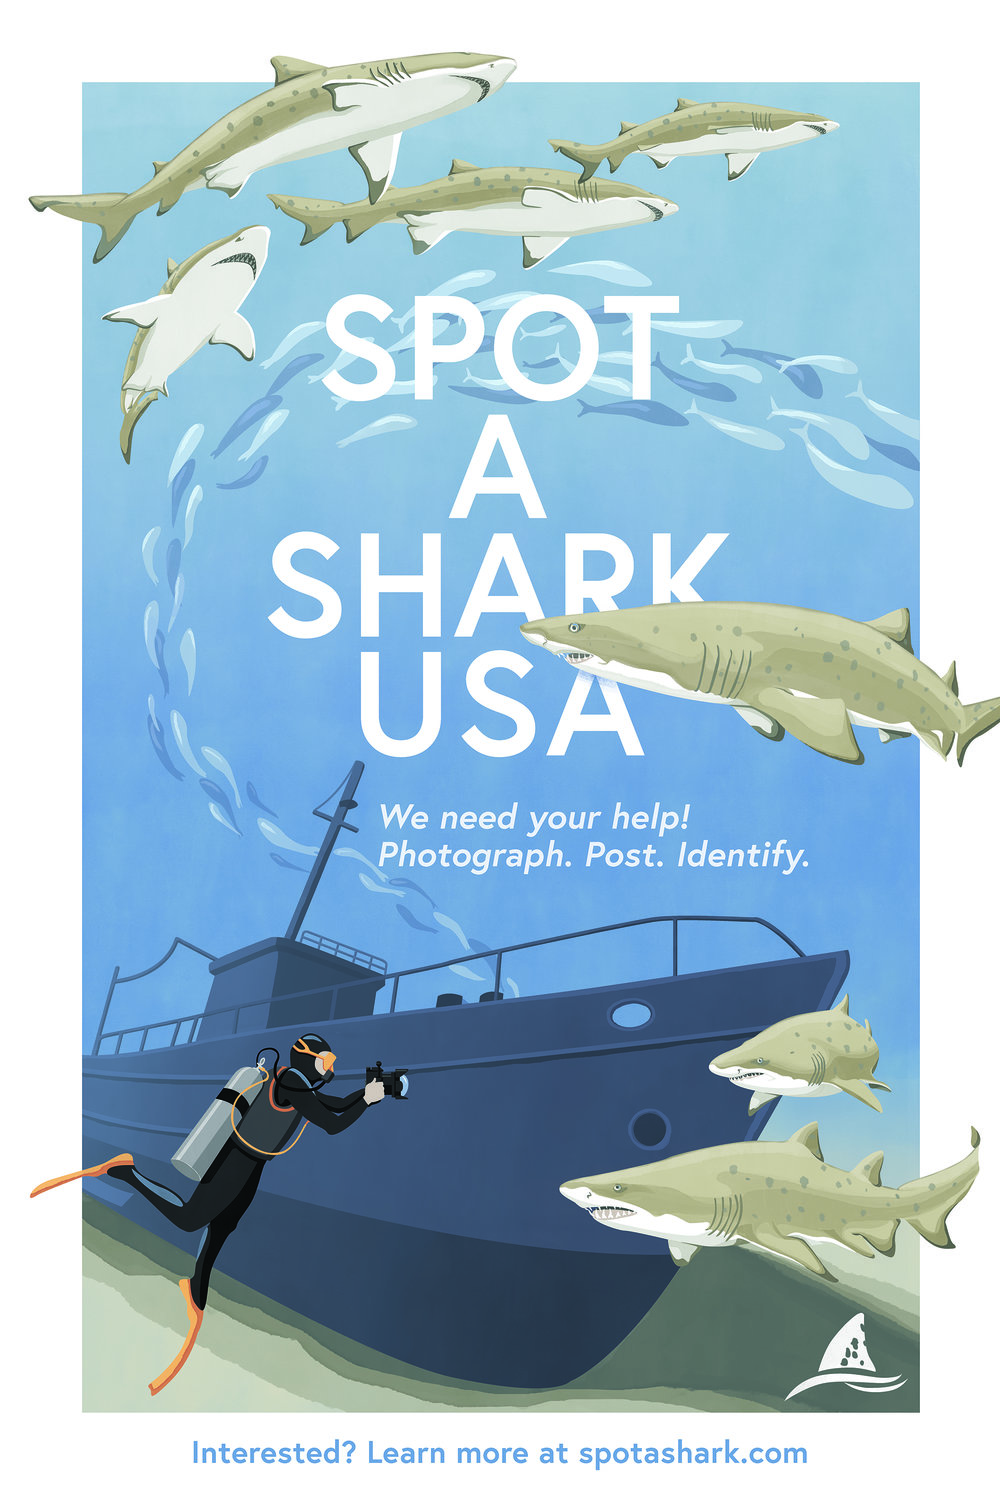 Spot a Shark USA - Alex teamed with Spot A Shark USA, a citizen-science program promoting Sand Tiger Shark conservation, to create a collection of outreach materials for dive shops and boats along the Atlantic Coast